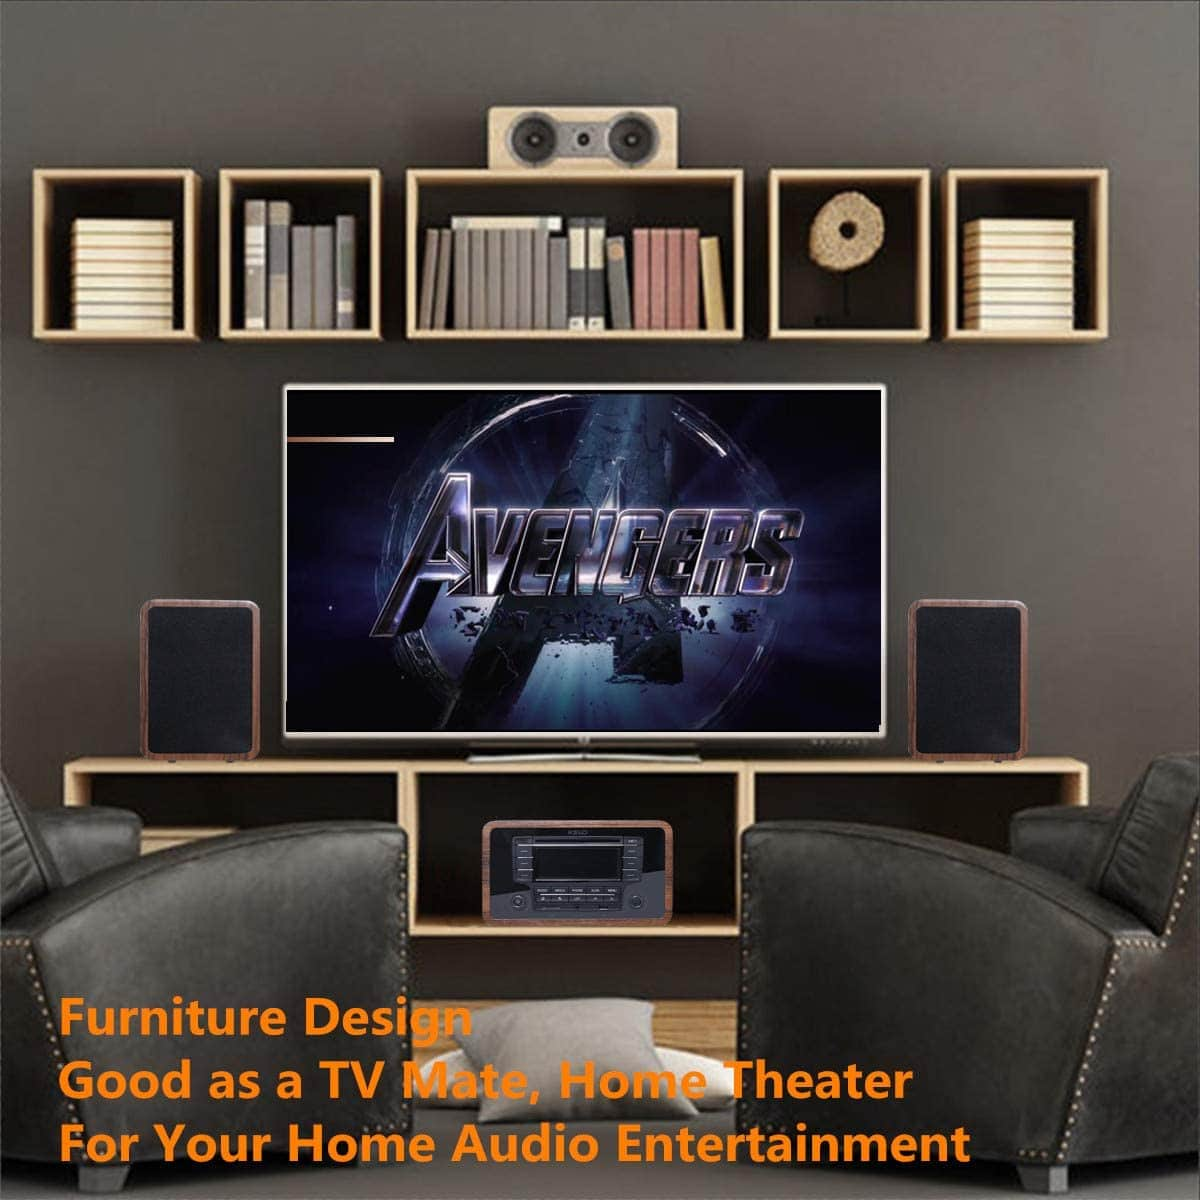 KEiiD Stereo in home theater setup